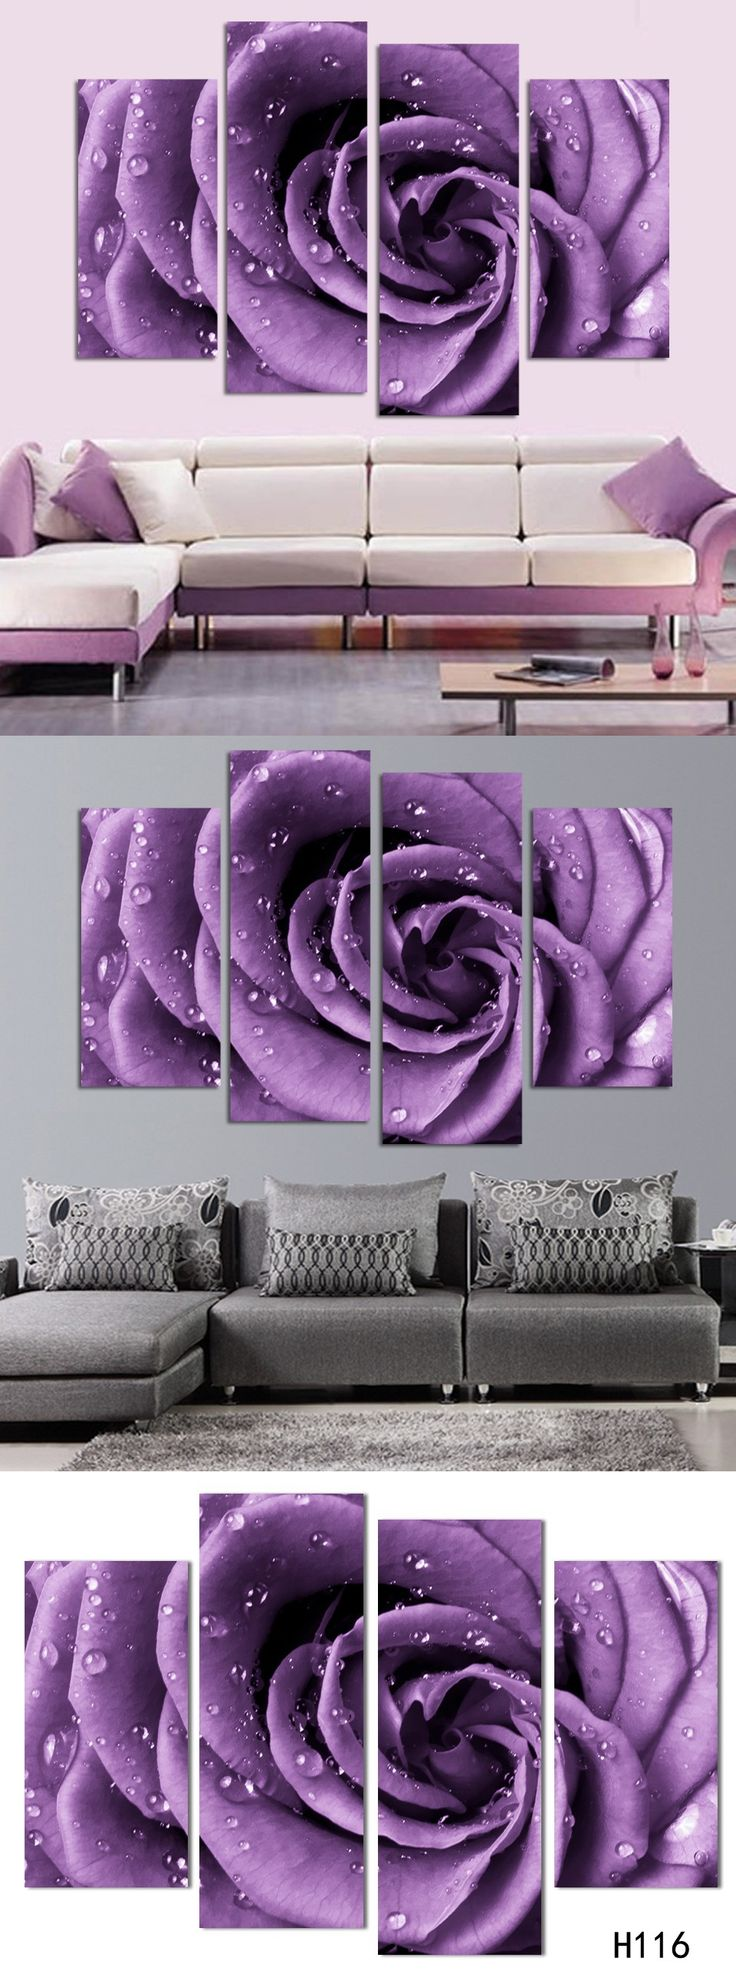 Free Shipping 3 piece wall art white purple lover flower big perfect canvas wall art on Canvas Picture Modern Picture home decor $36.6